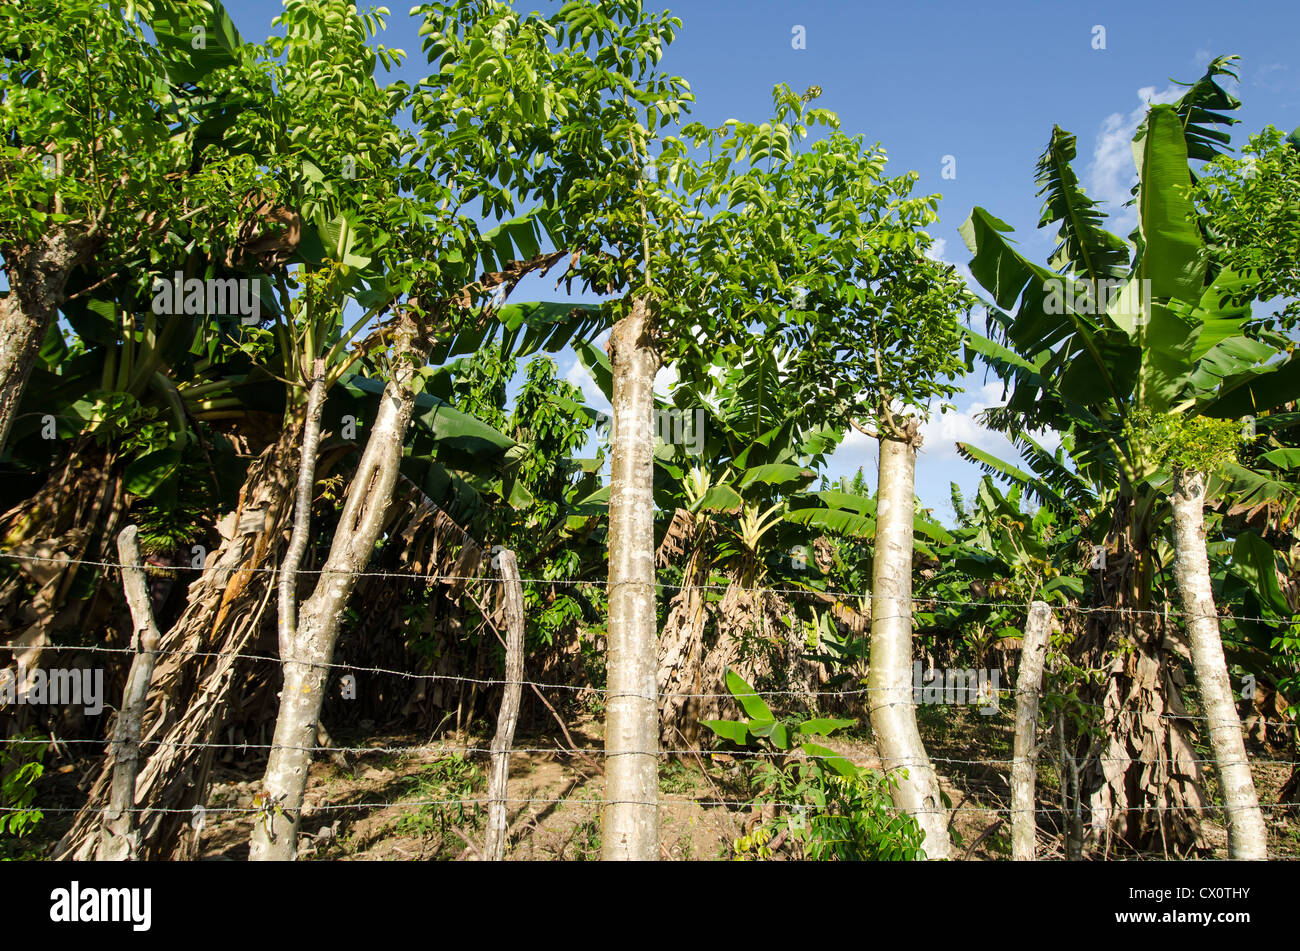 Banana plantation showing banana trees and barb wire fence made of old wood steaks, Boca de Yuma, Dominican Republic Stock Photo